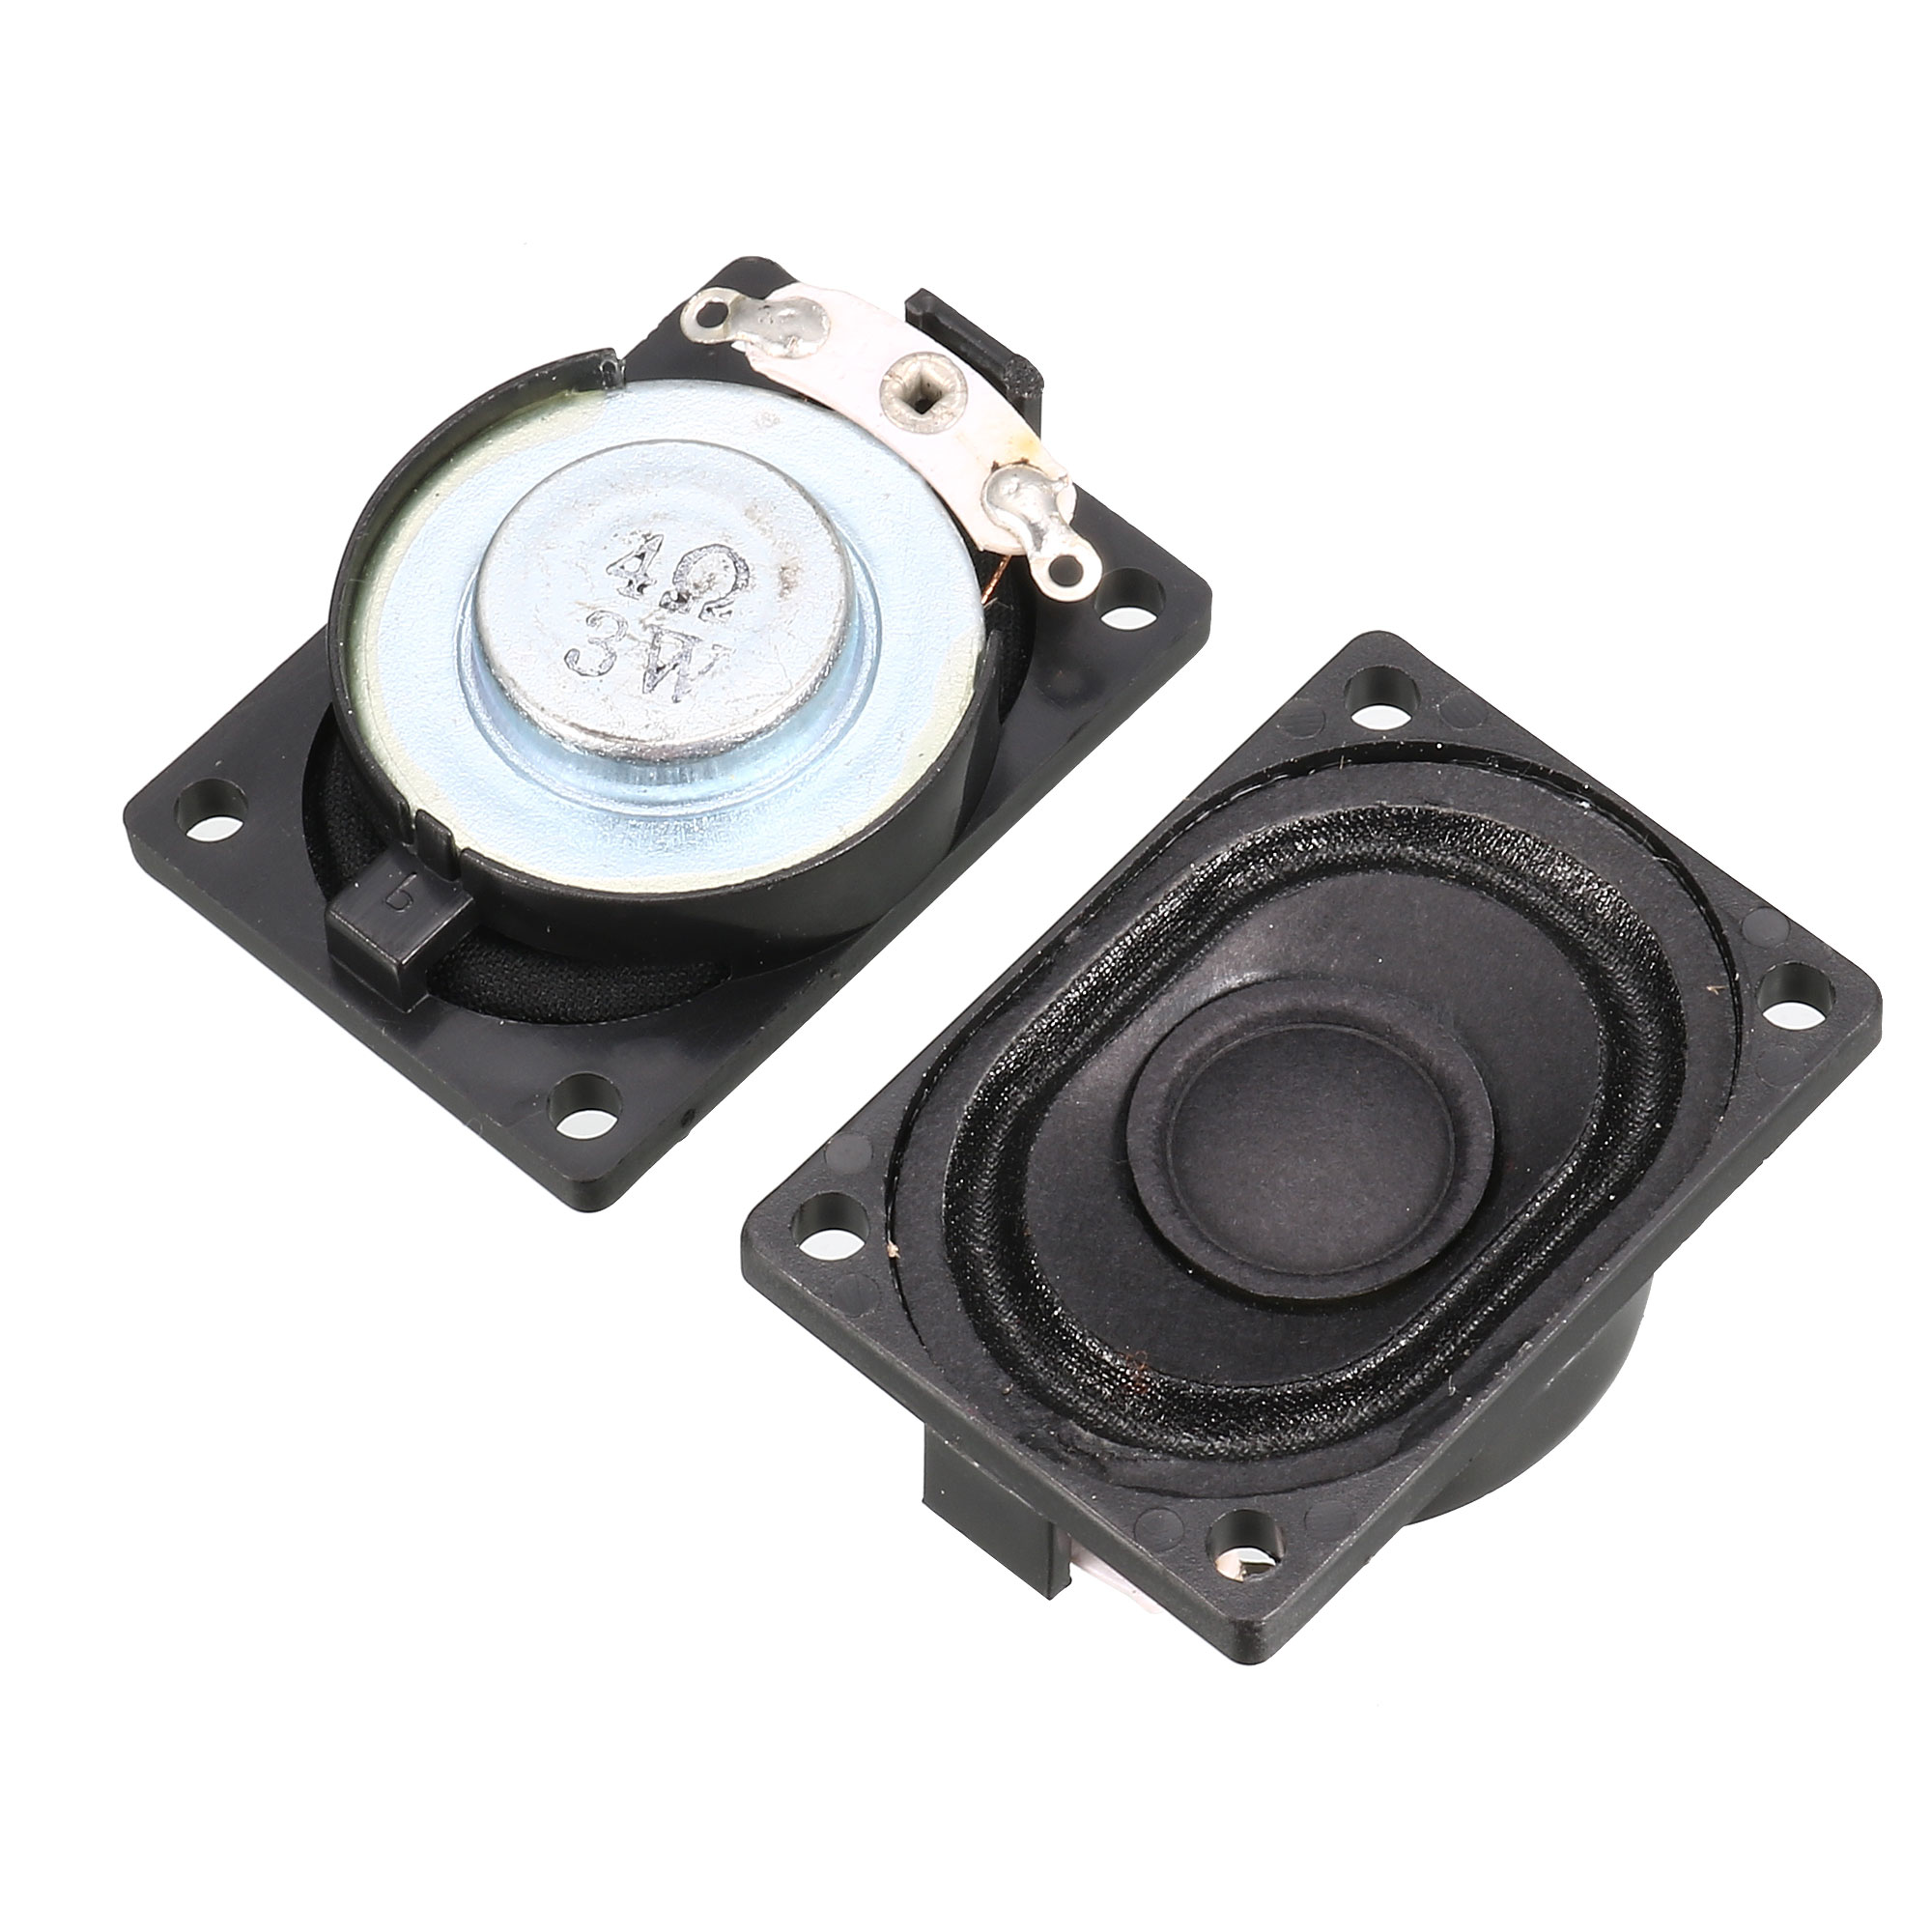 2 Pcs 40mm x 28mm Magnetic Speaker Notebook Displayer LCD Ad Player Audio Amplifier 3W 4 Ohm Replacement